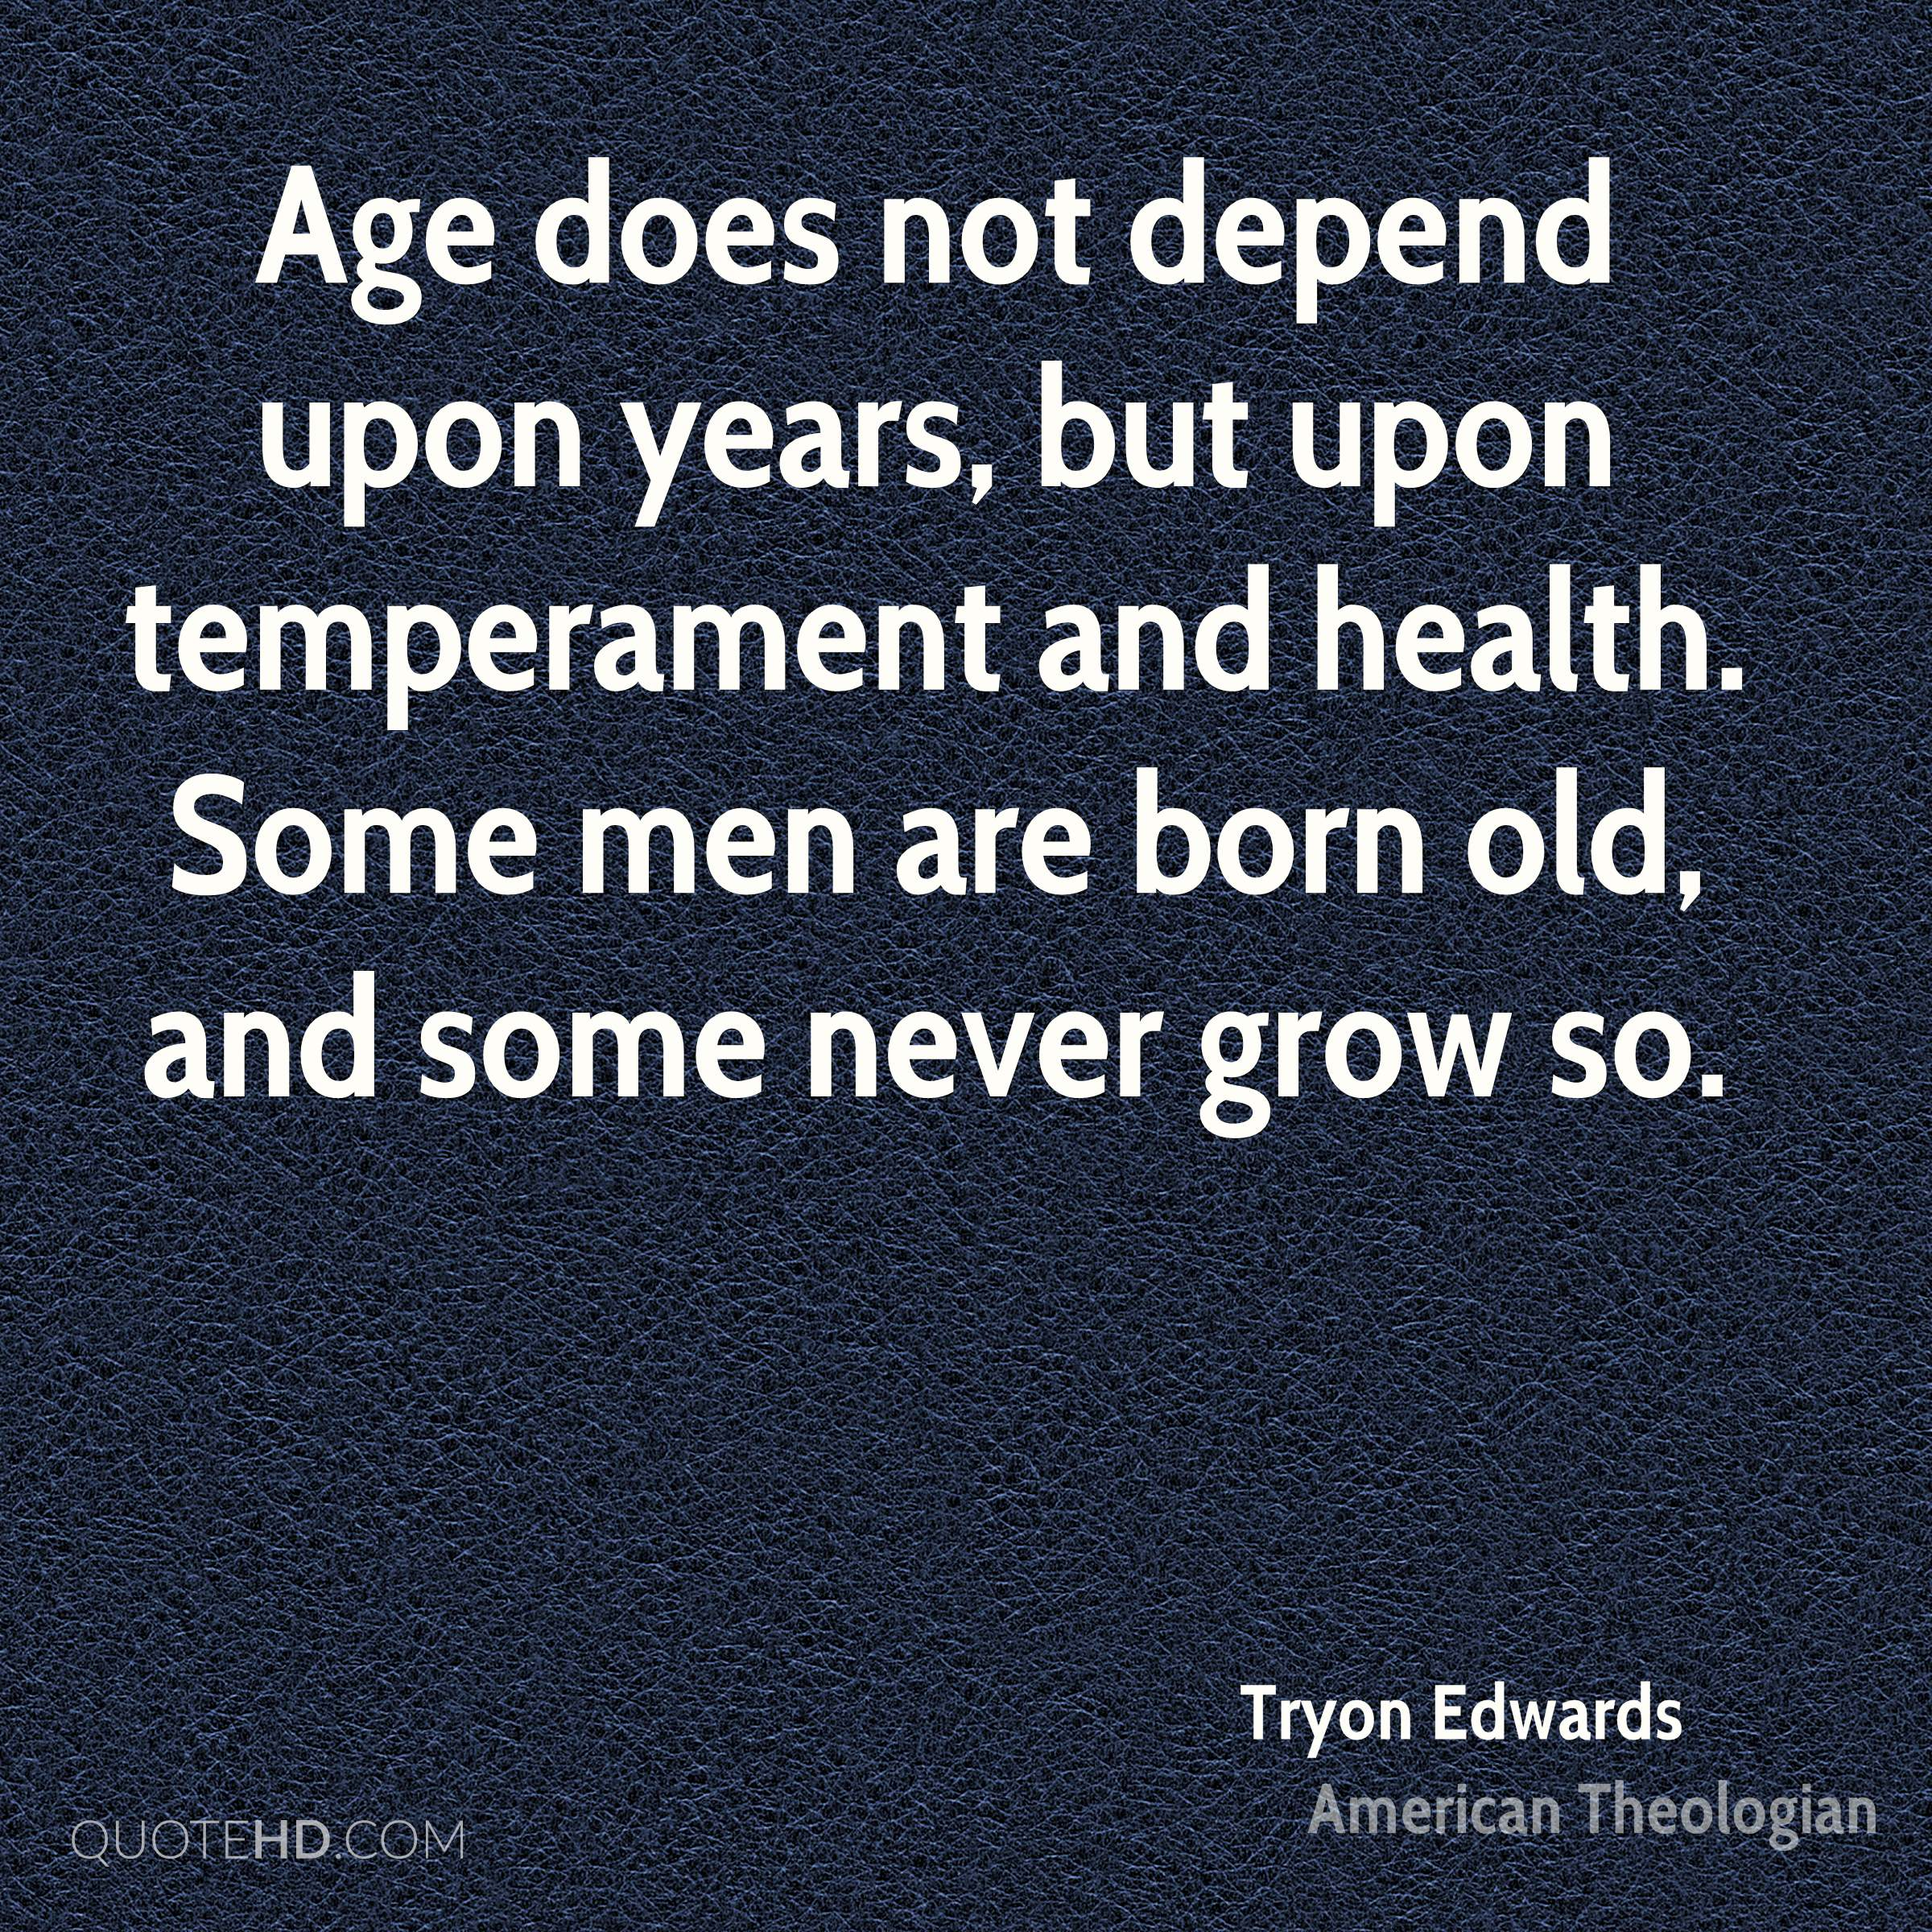 Age does not depend upon years, but upon temperament and health. Some men are born old, and some never grow so.